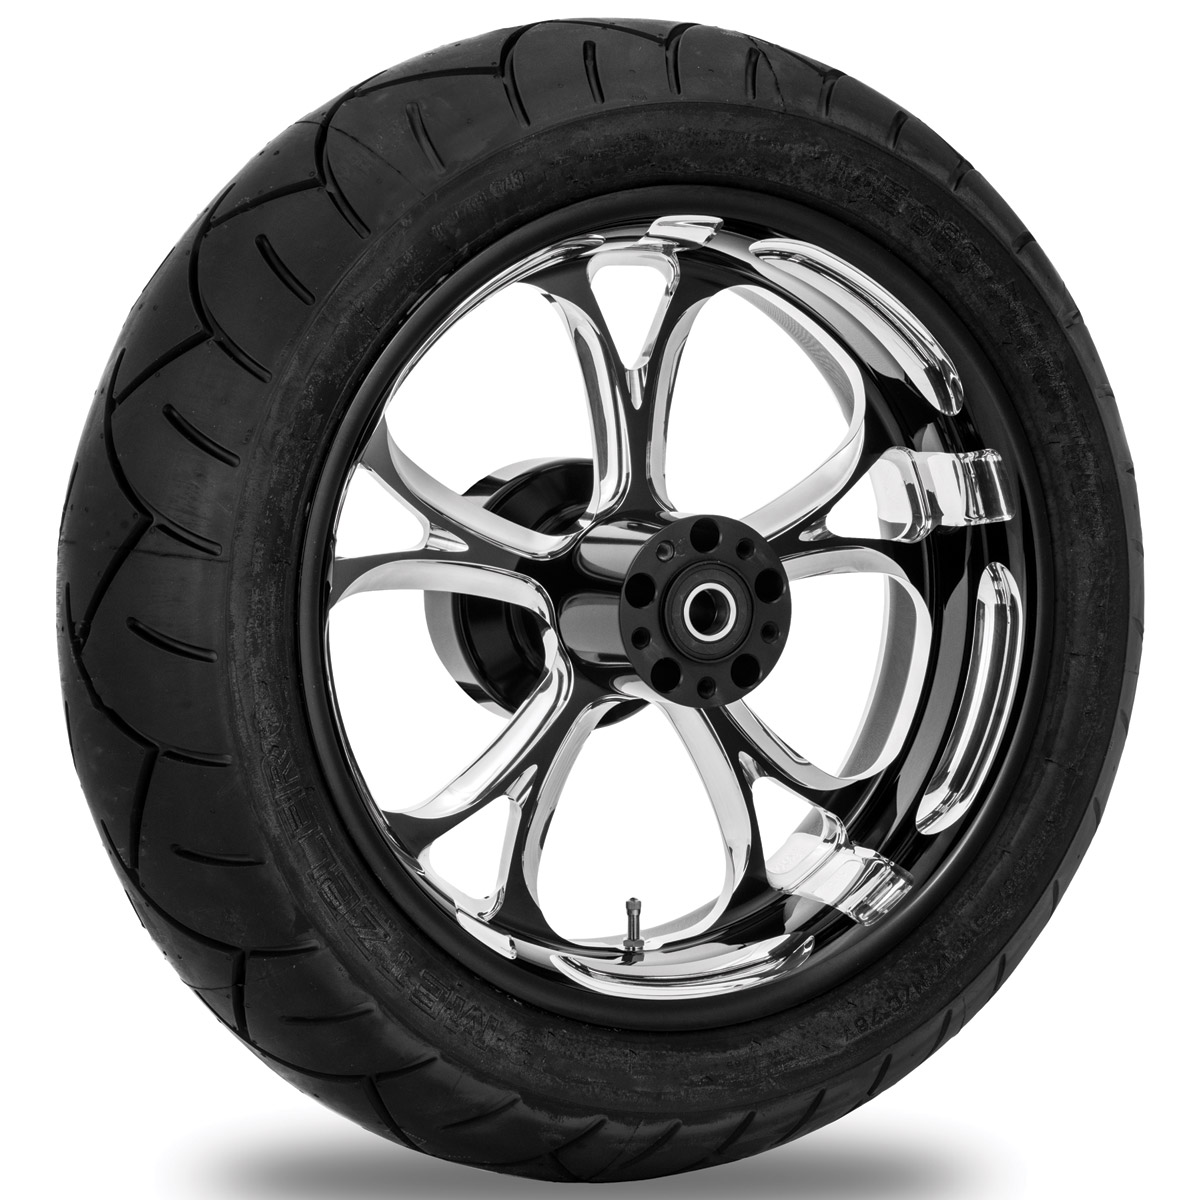 Performance Machine Luxe Contrast Cut Platinum Rear Wheel Package, 17″ x 6″ with ABS